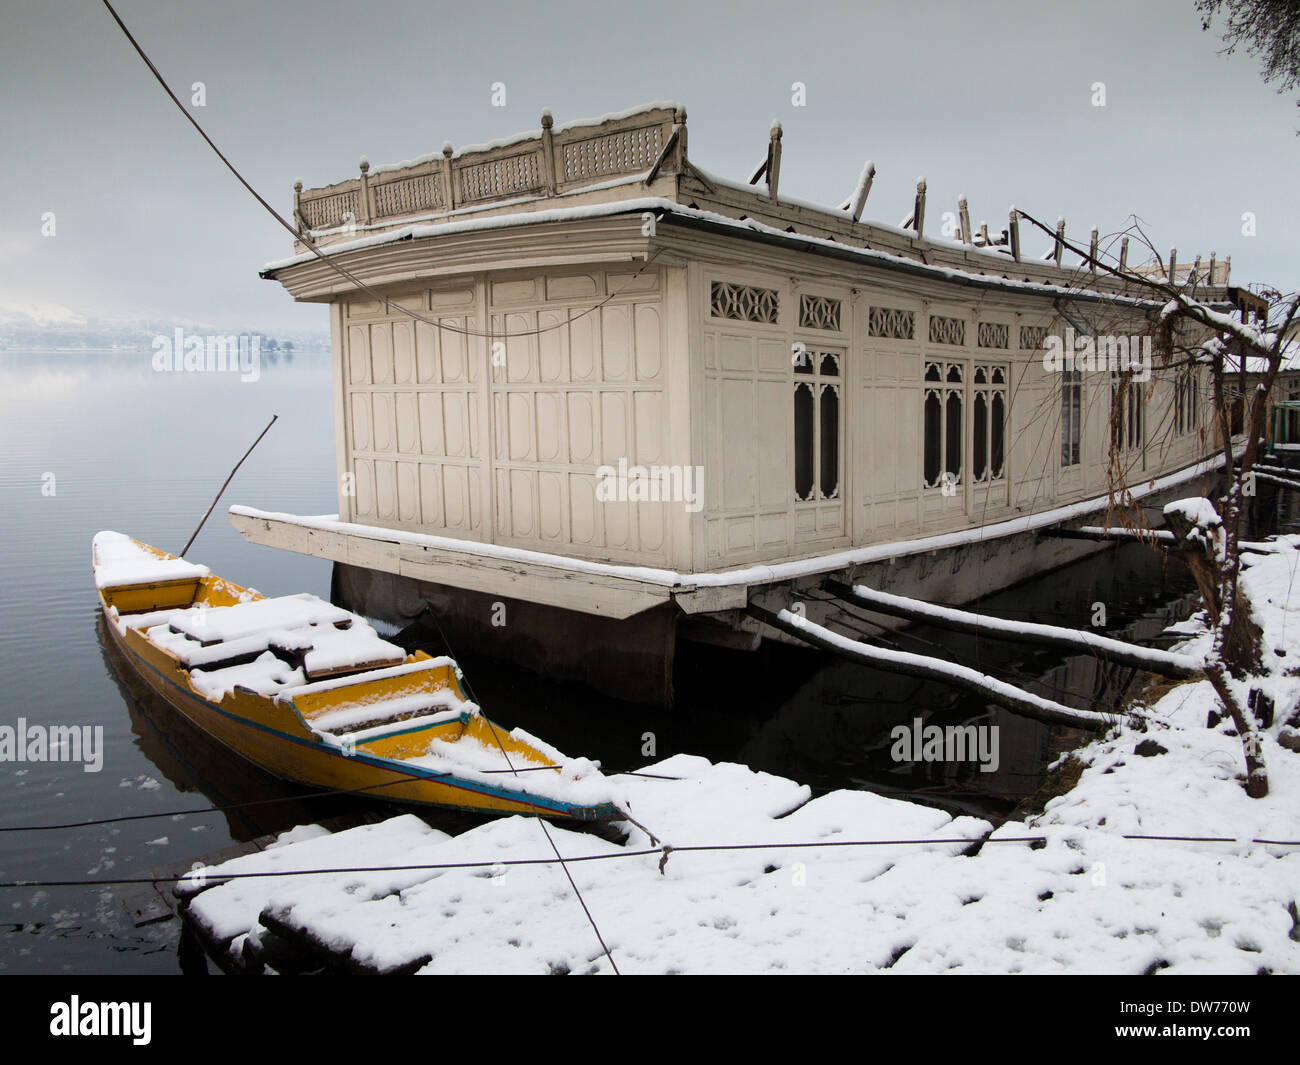 India, Kashmir, Srinagar, winter, snow clad houseboat and shikara, Butts Claremont Houseboats - Stock Image